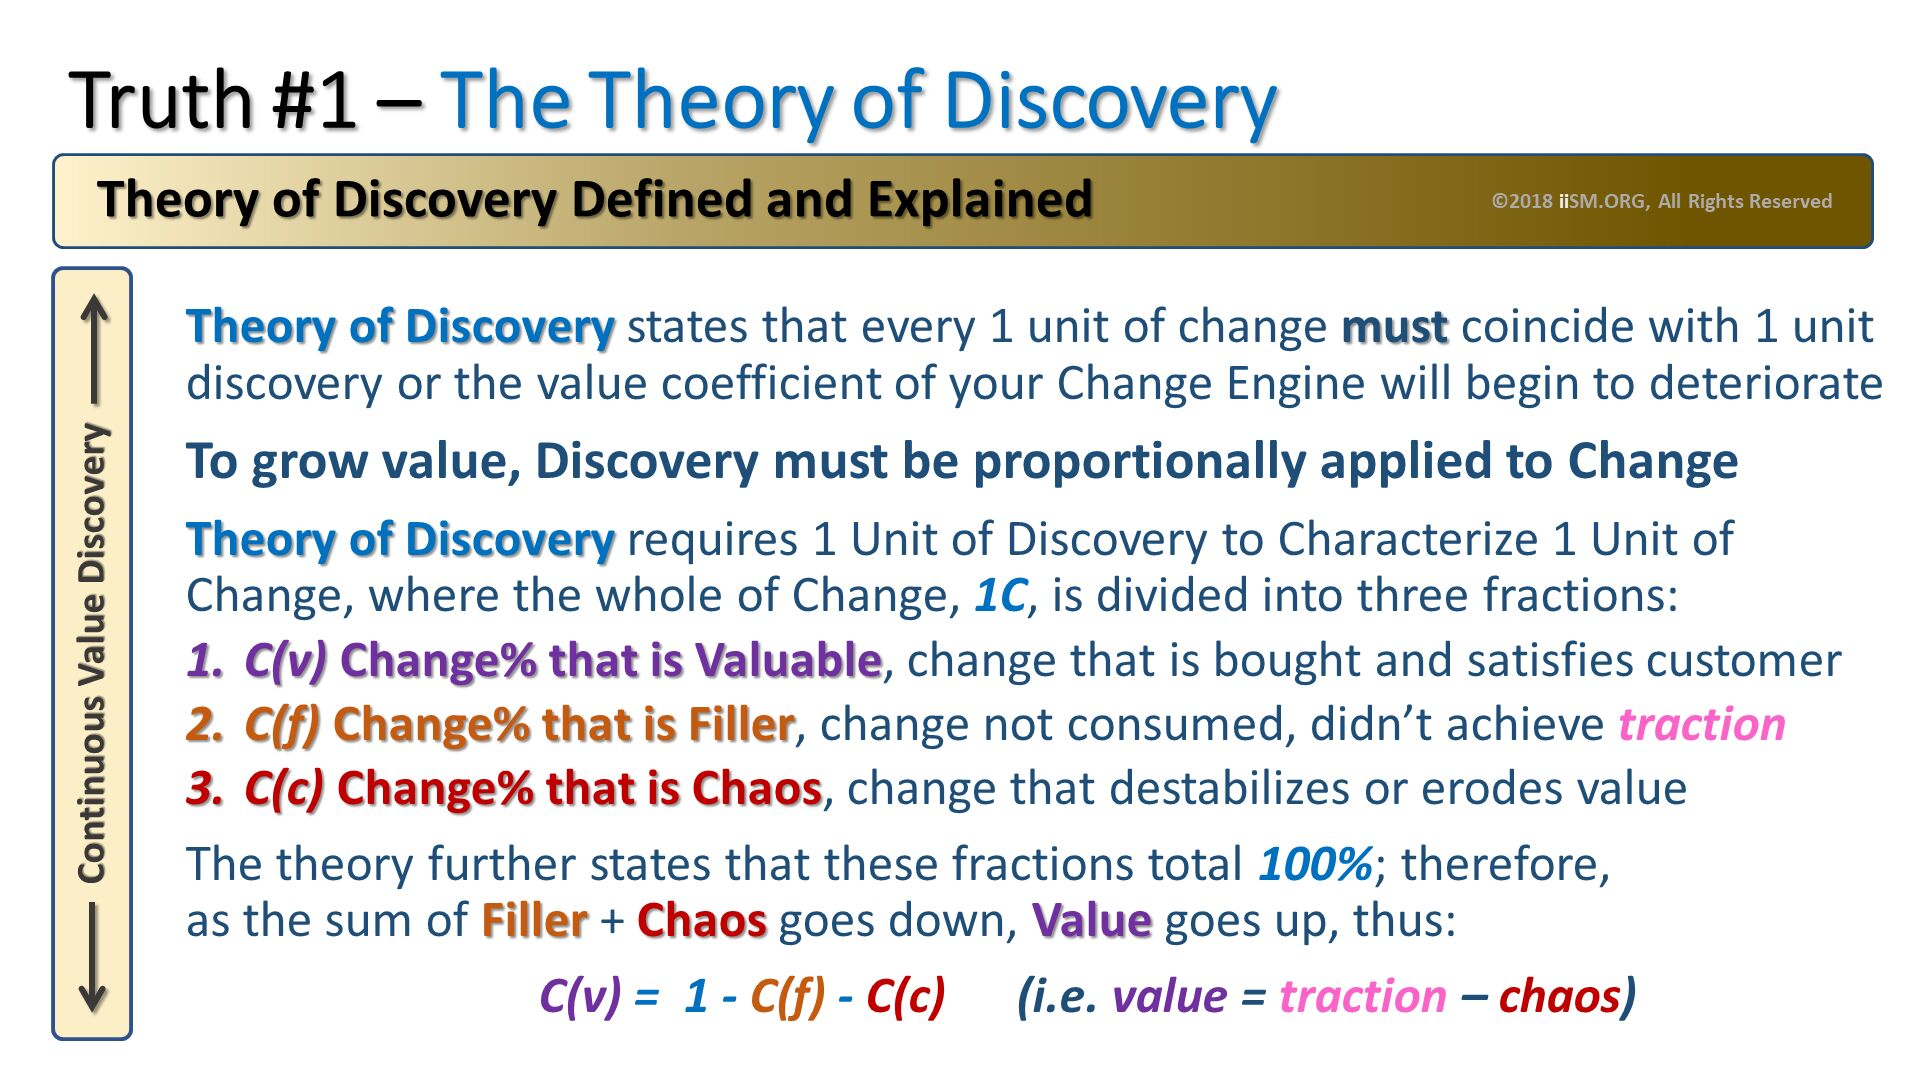 Truth #1 – The Theory of Discovery. Theory of Discovery states that every 1 unit of change must coincide with 1 unit discovery or the value coefficient of your Change Engine will begin to deteriorate To grow value, Discovery must be proportionally applied to Change Theory of Discovery requires 1 Unit of Discovery to Characterize 1 Unit of Change, where the whole of Change, 1C, is divided into three fractions: C(v) Change% that is Valuable, change that is bought and satisfies customer C(f) Change% that is Filler, change not consumed, didn't achieve traction C(c) Change% that is Chaos, change that destabilizes or erodes value The theory further states that these fractions total 100%; therefore, as the sum of Filler + Chaos goes down, Value goes up, thus:                               C(v) =  1 - C(f) - C(c)      (i.e. value = traction – chaos).   Theory of Discovery Defined and Explained. ©2018 iiSM.ORG, All Rights Reserved.